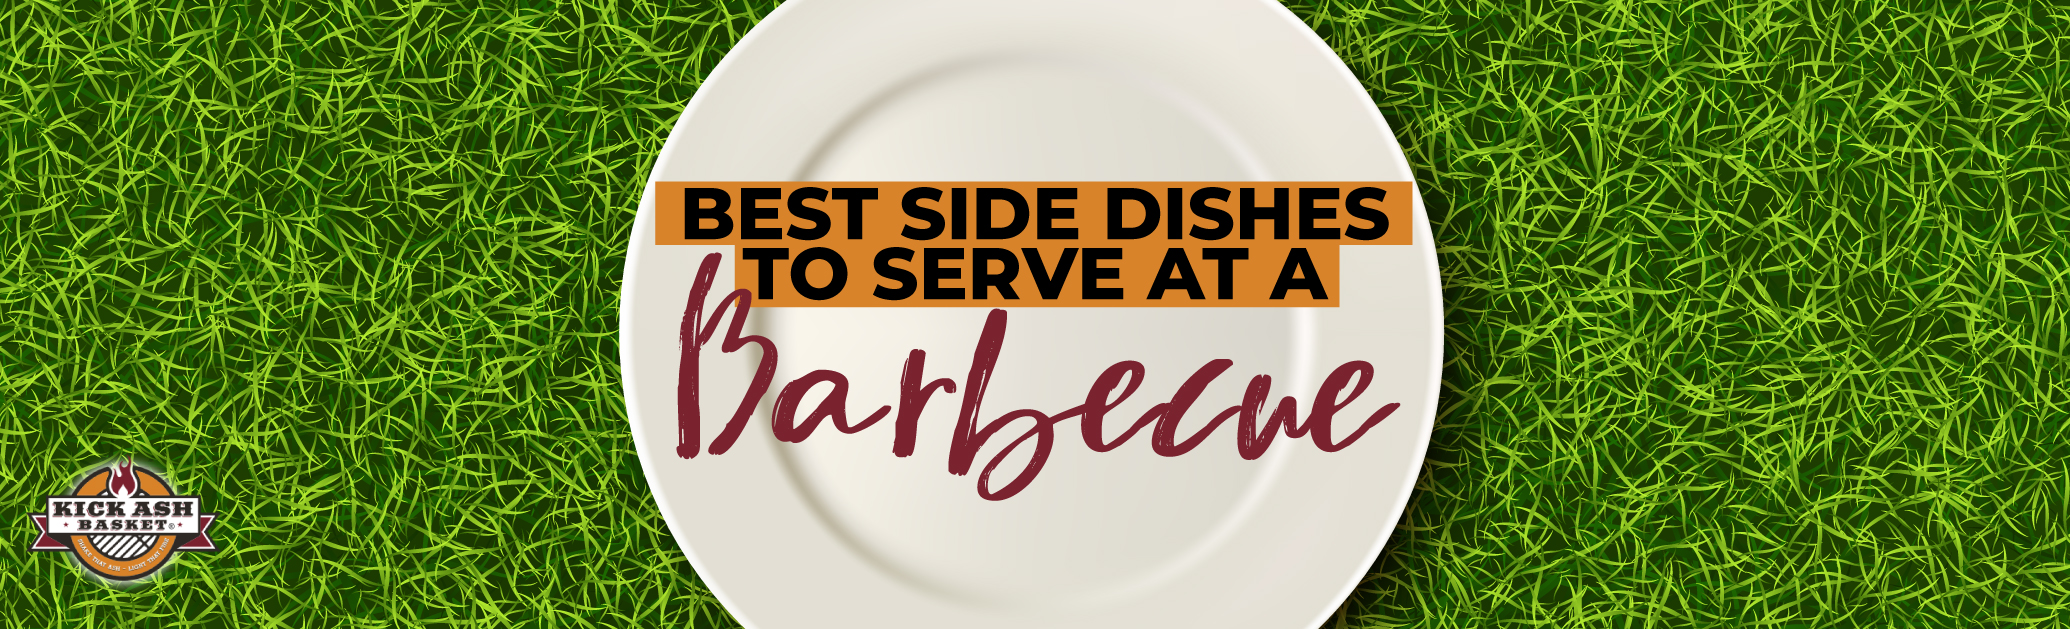 Best Side Dishes to Serve at a Barbecue